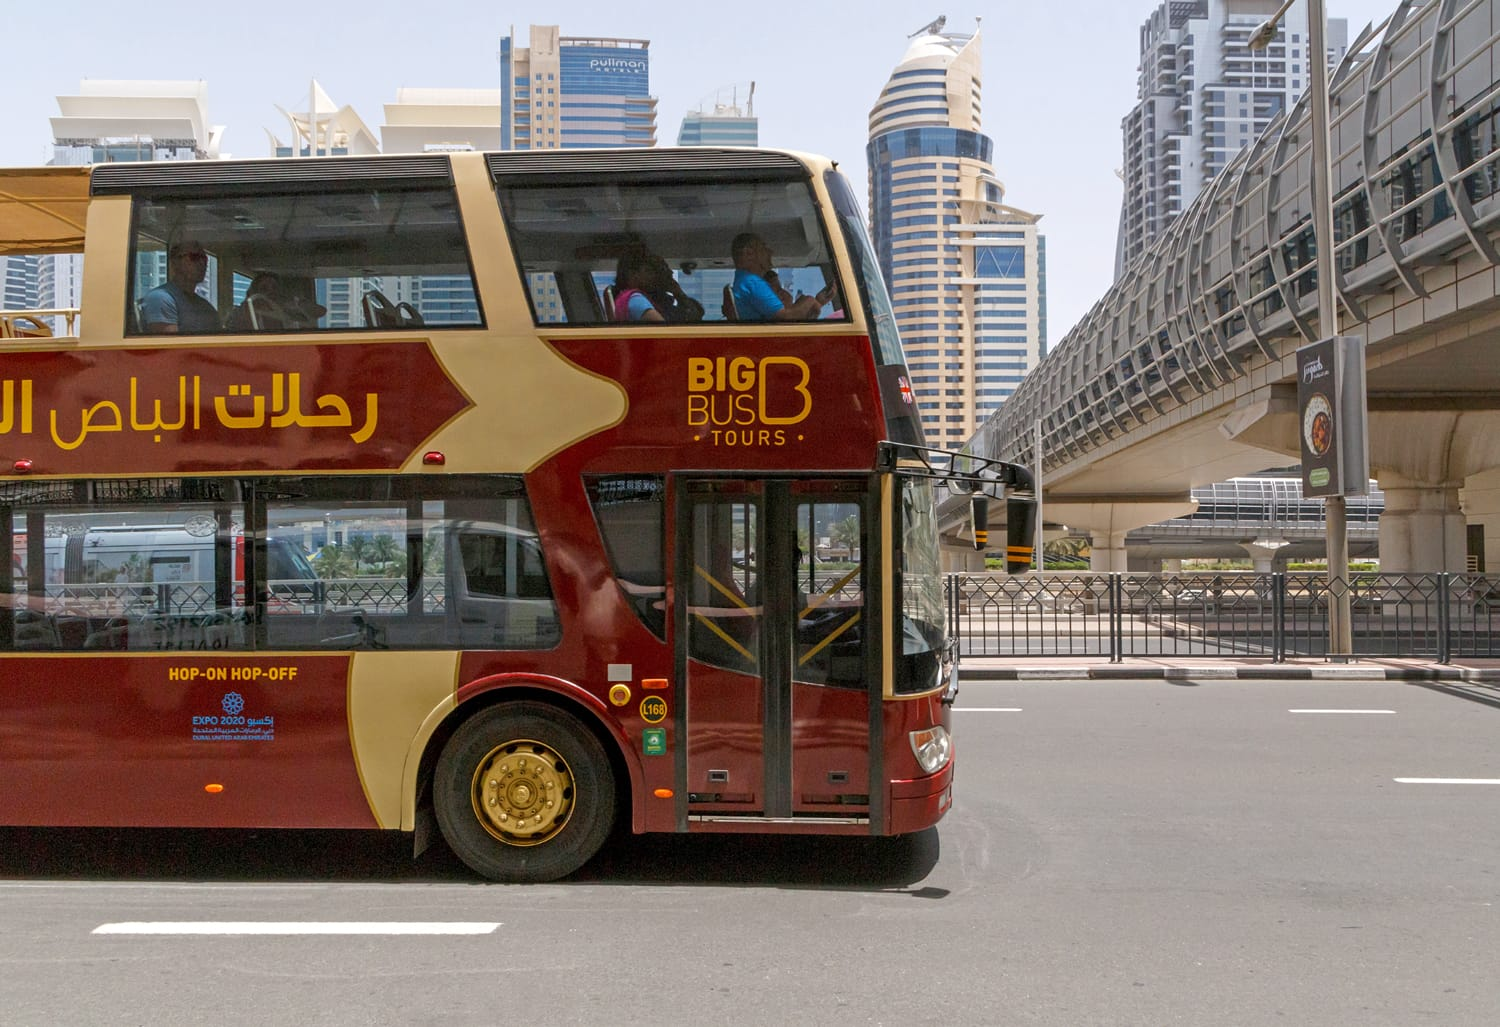 Hop on Hop off bus tours Dubai